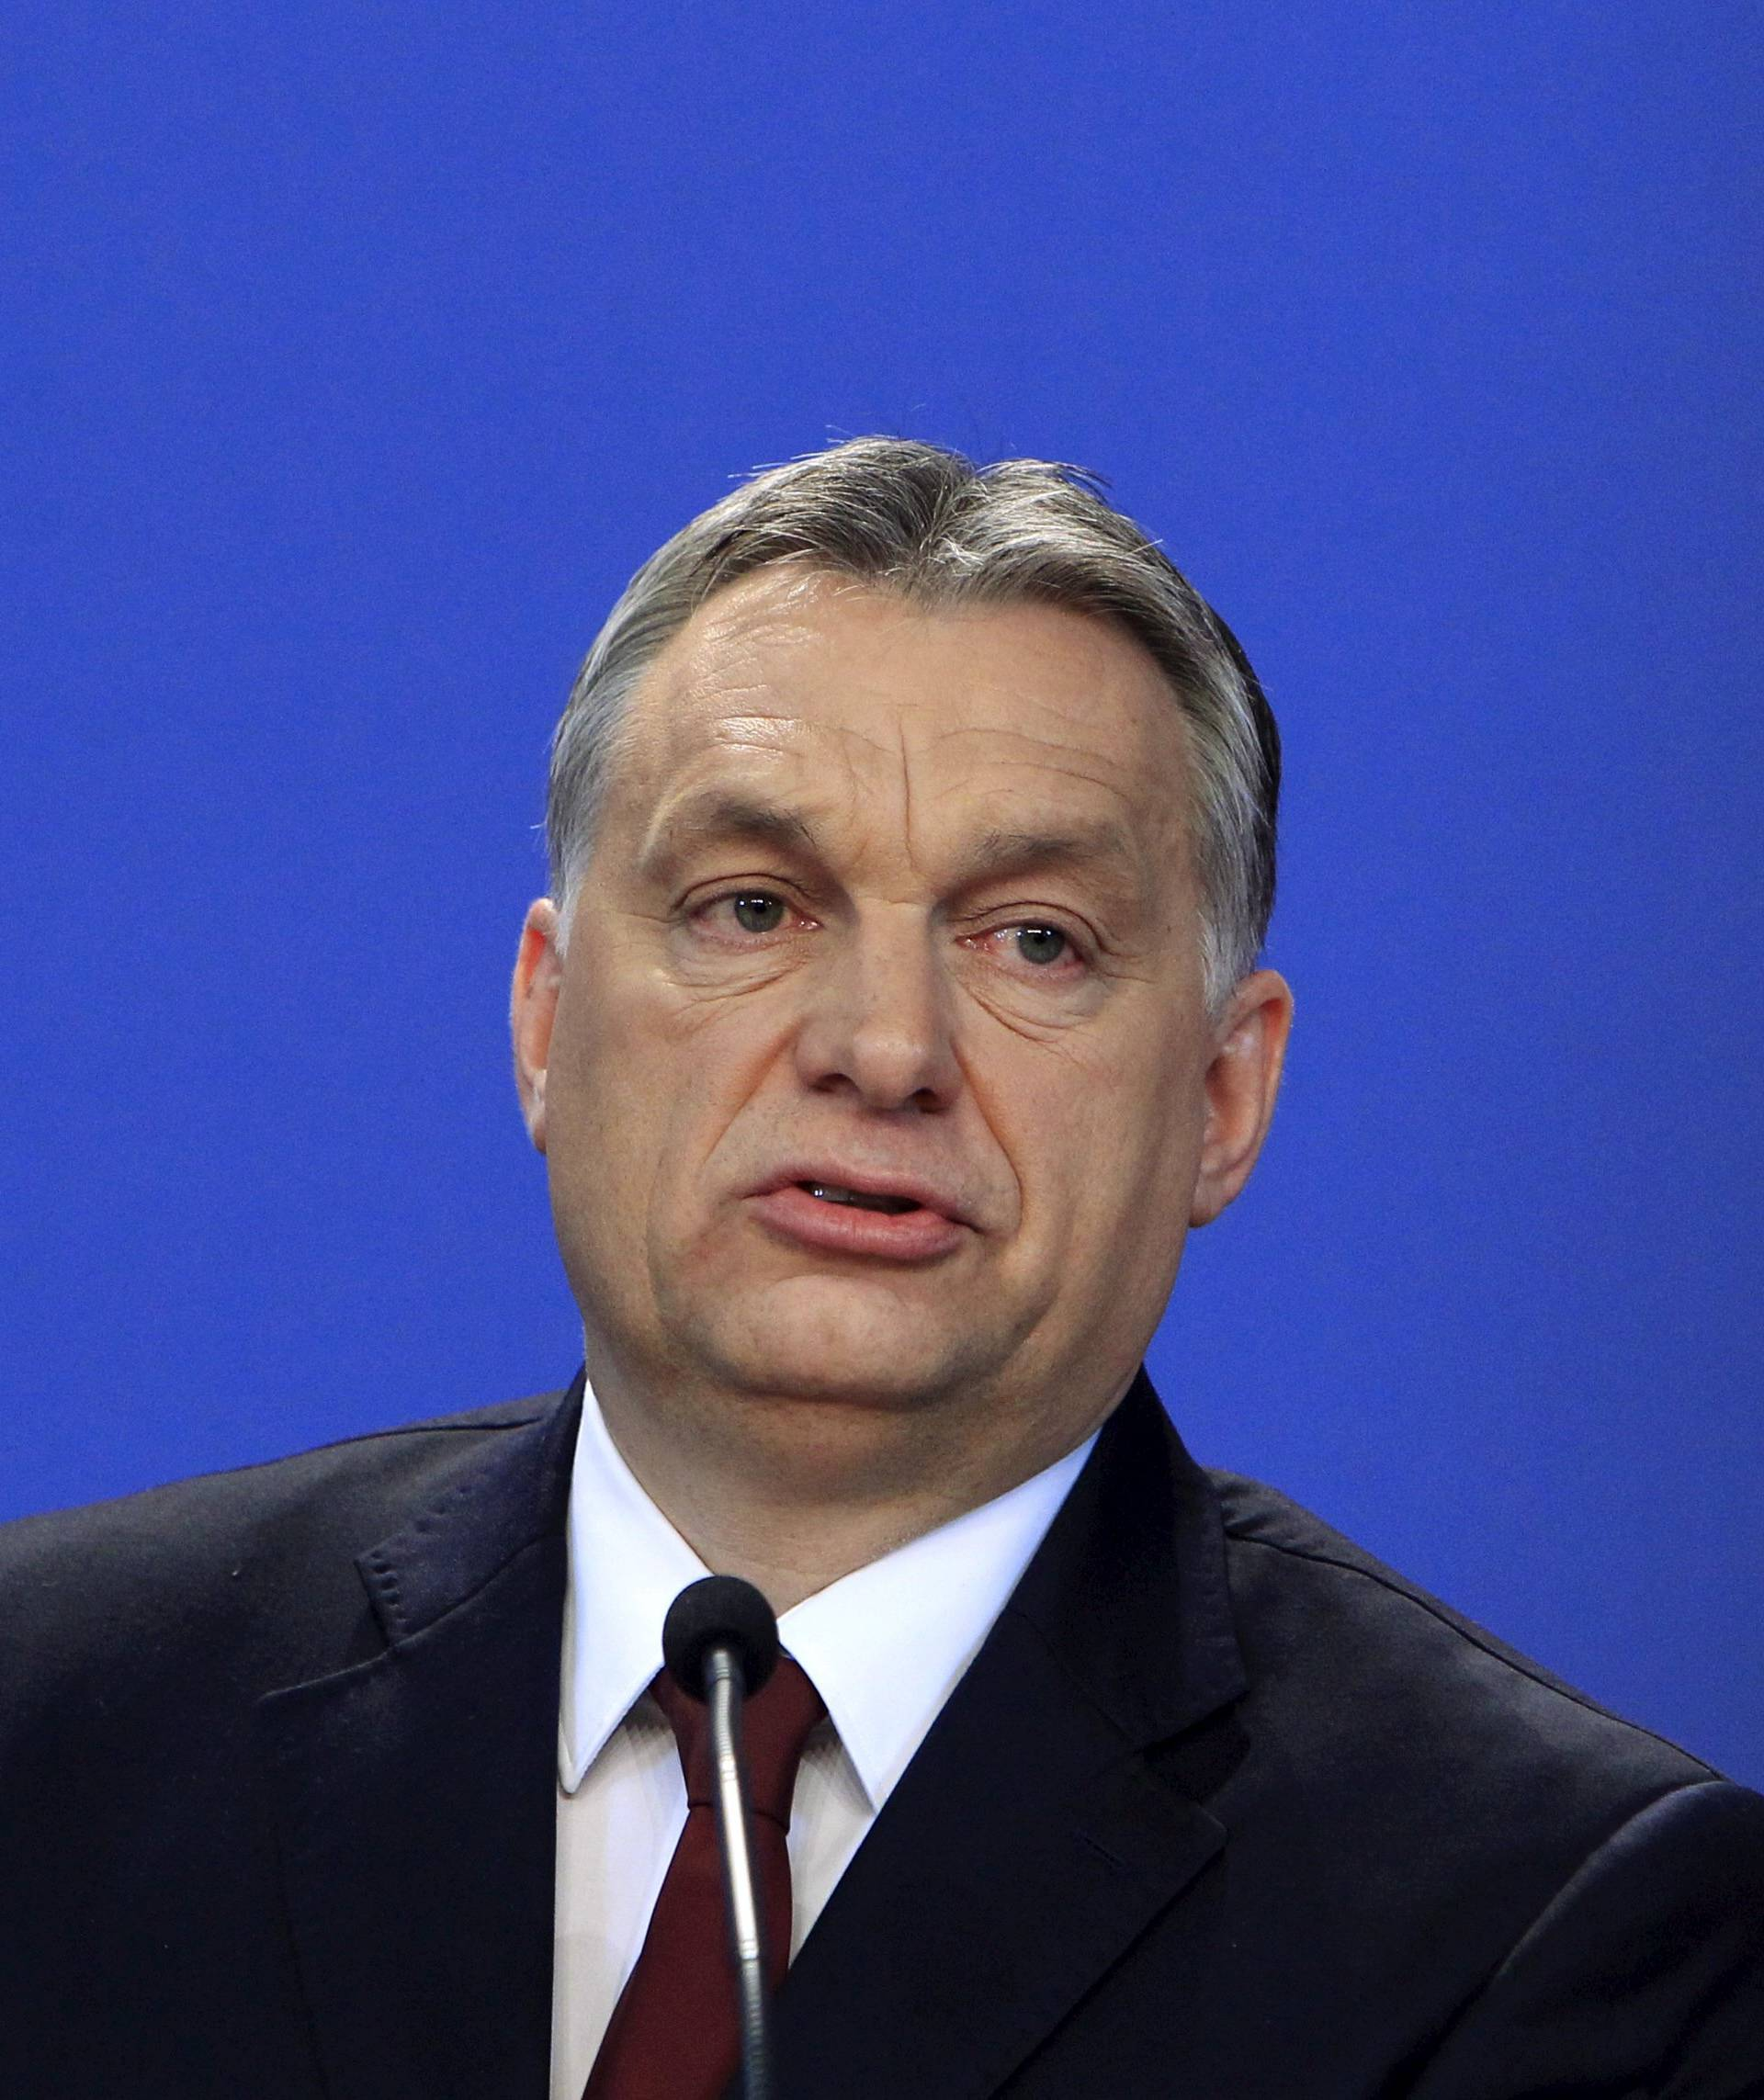 Hungarian Prime Minister Orban attends a news conference with Bavarian State Premier Horst Seehofer in Budapest